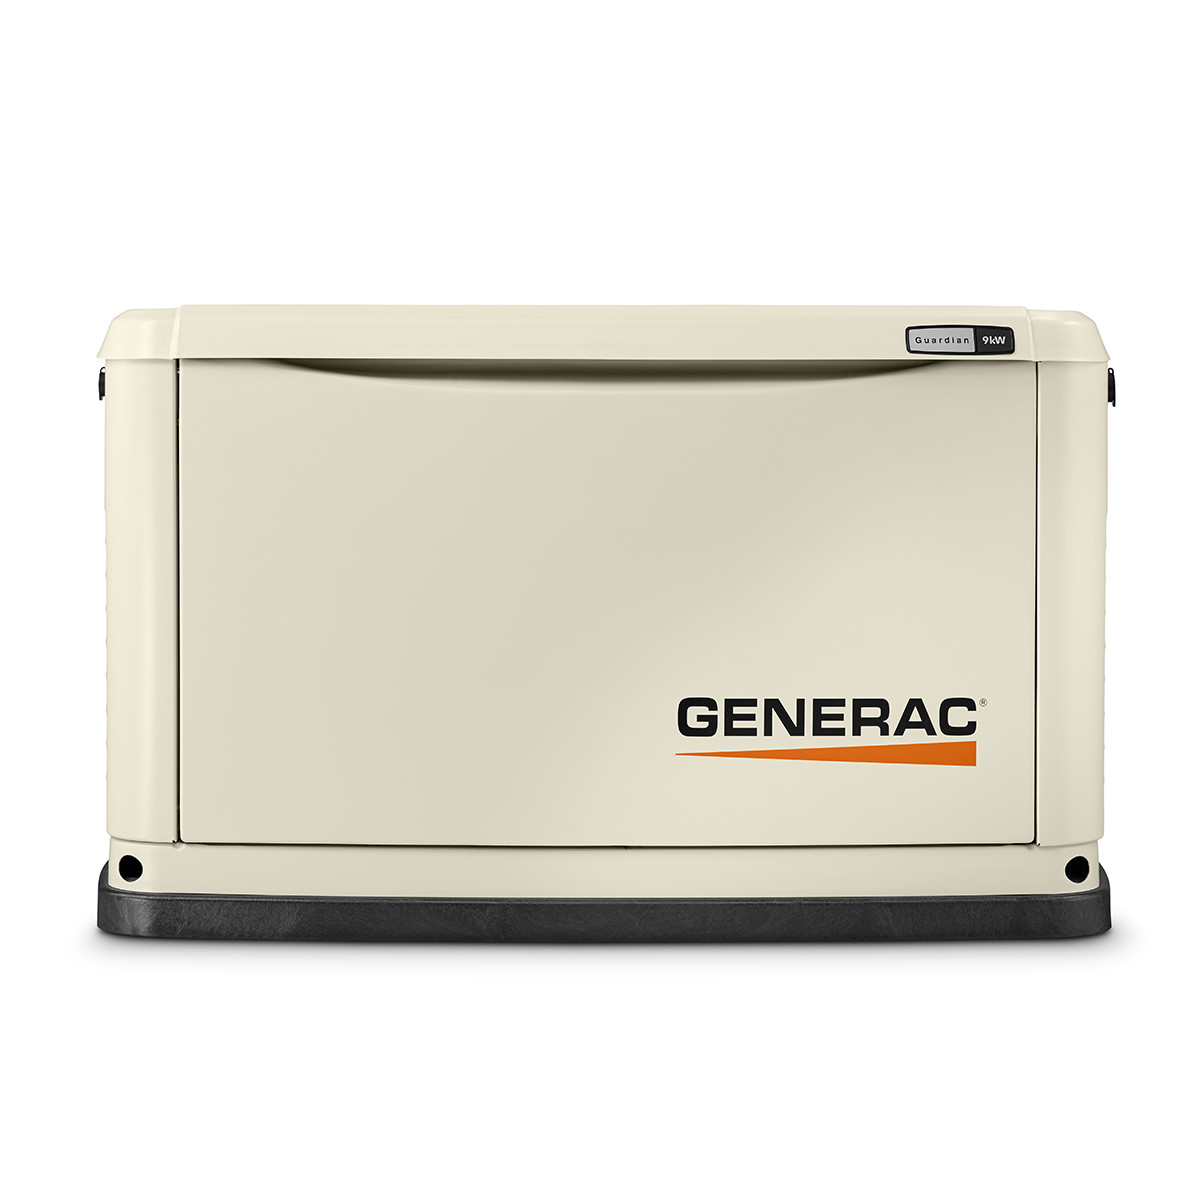 hight resolution of 9kw generac stand alone generator model 7029